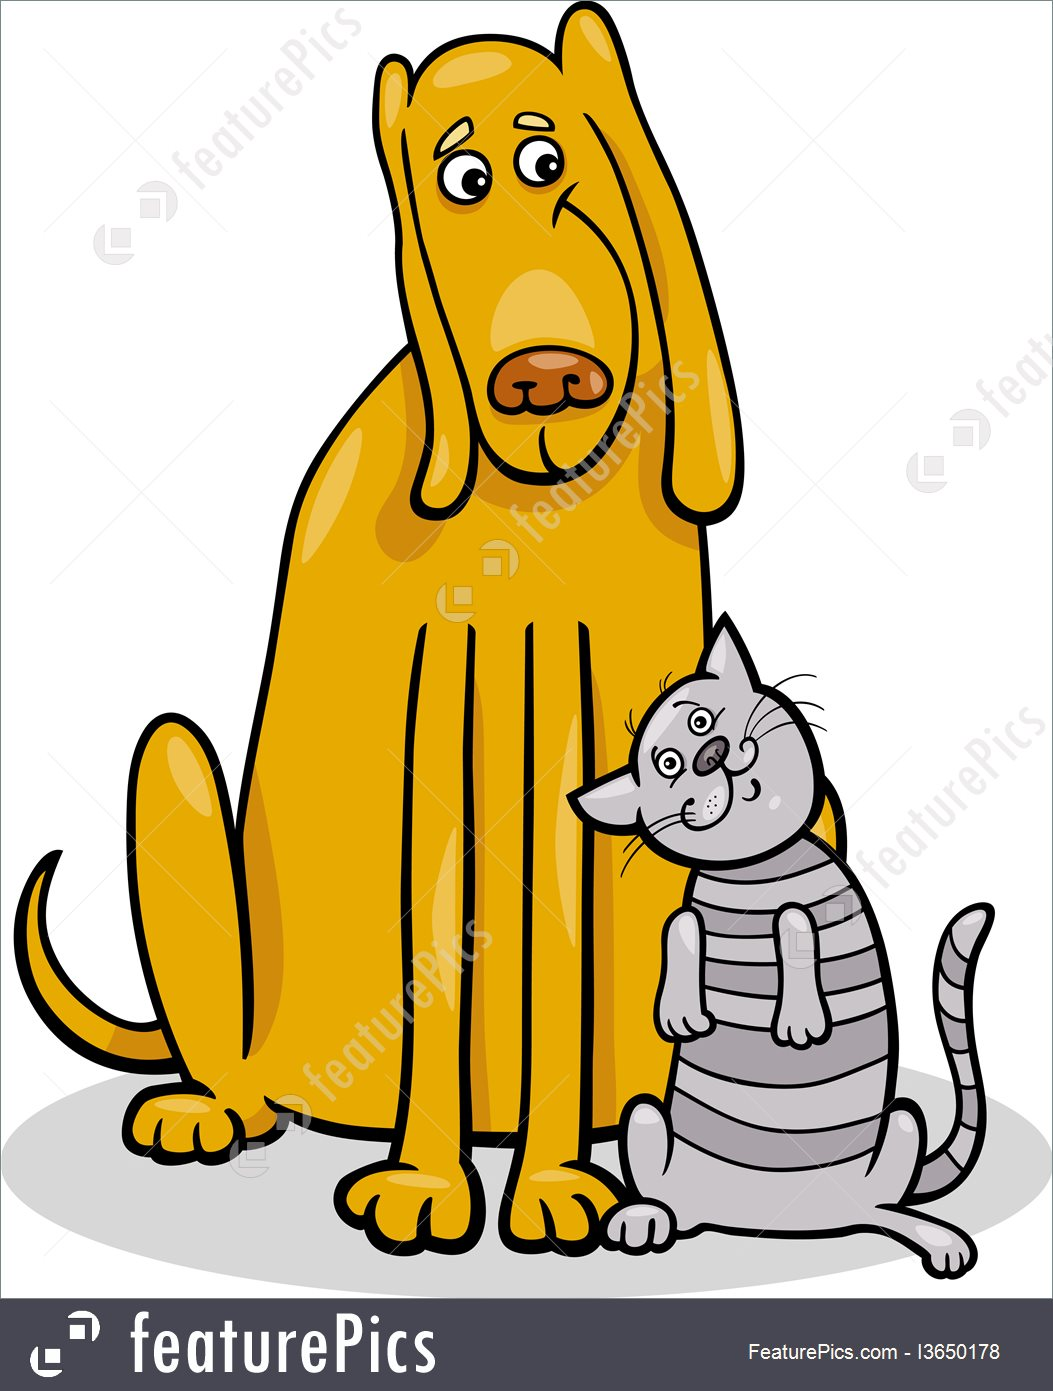 1053x1391 Dog And Cat In Friendship Cartoon Illustration